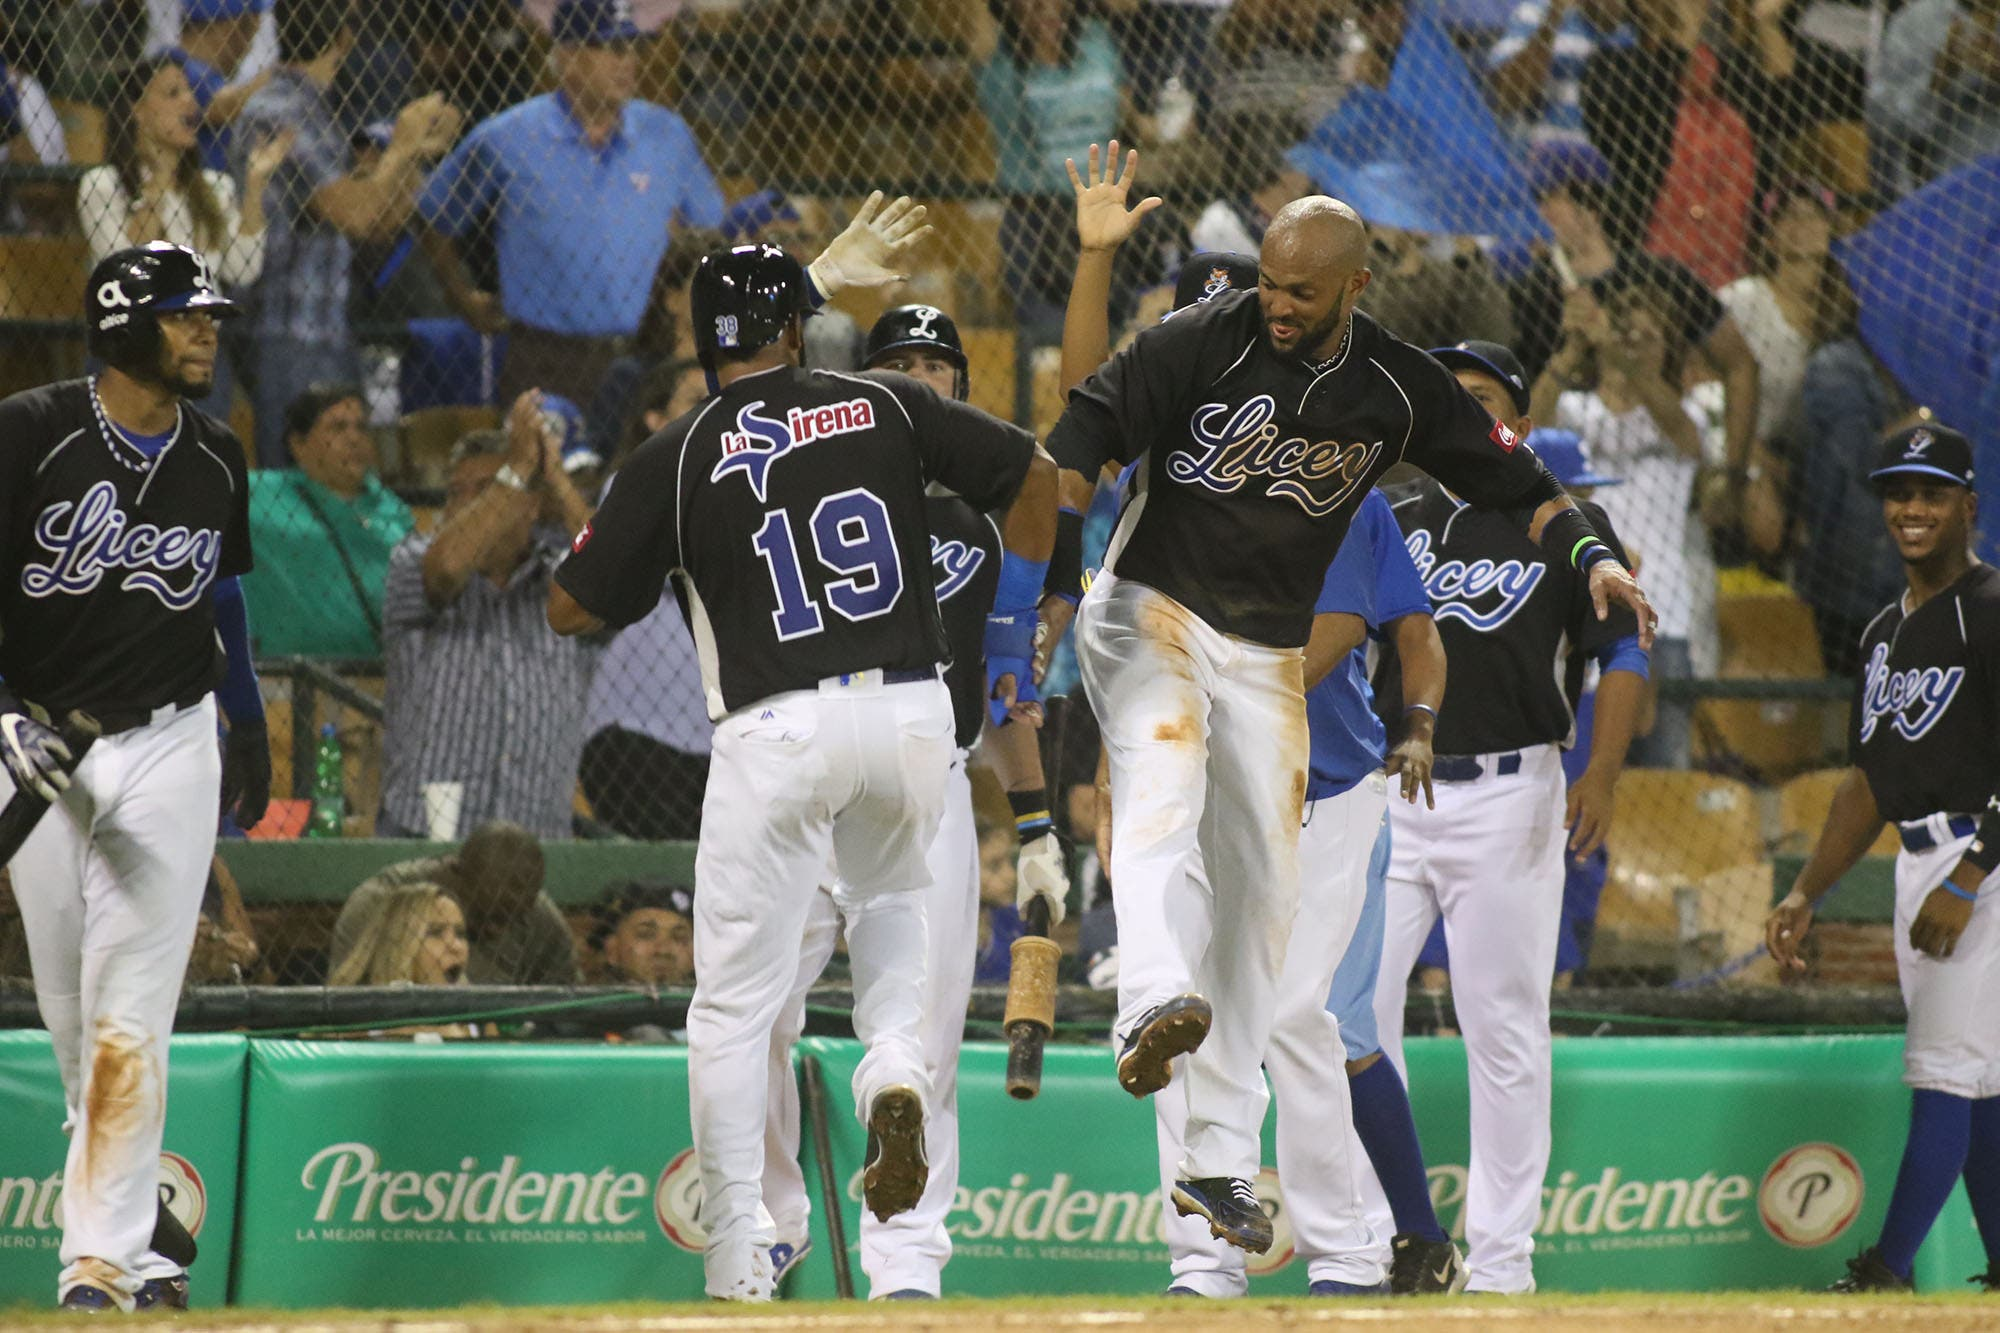 licey-3-1